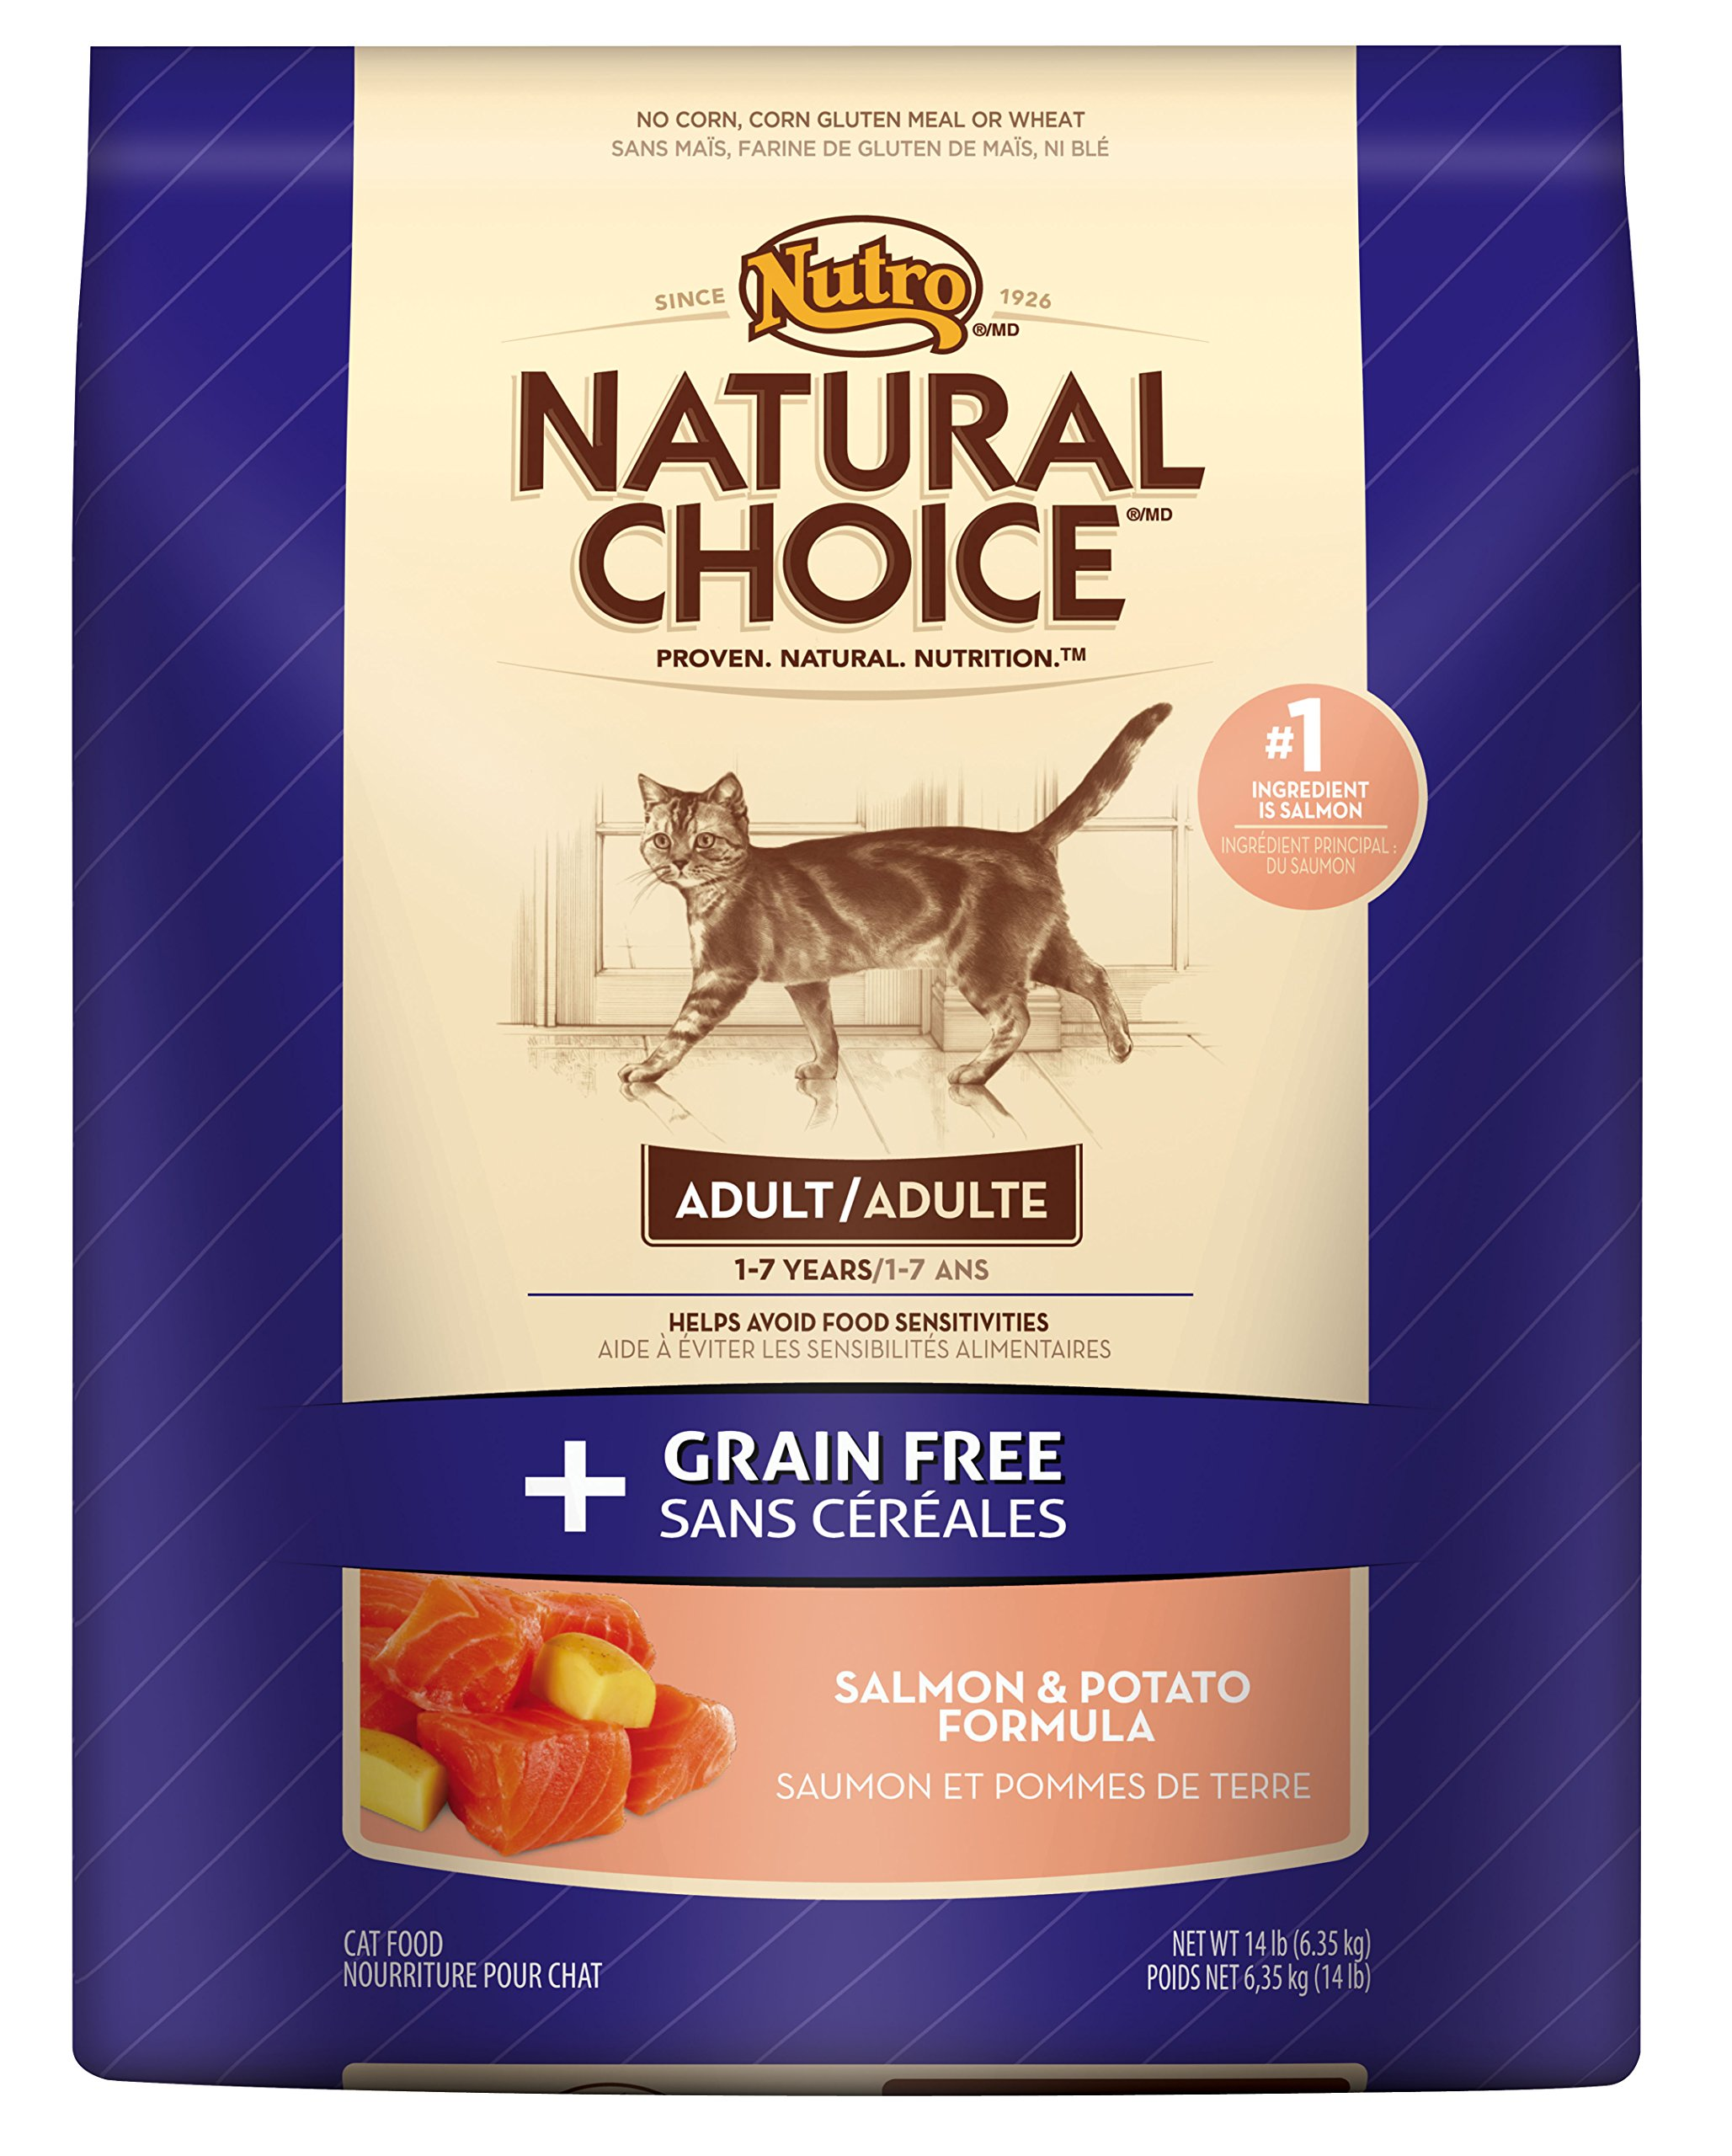 NATURAL CHOICE GRAIN FREE Adult Cat Salmon and Potato Formula - 14 lbs. (6.35 kg)